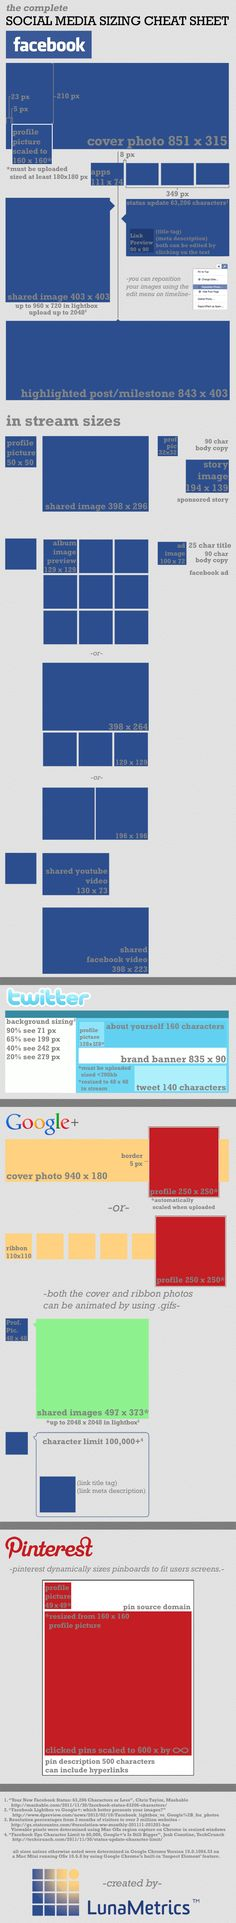 The complete Social Media sizing cheat sheet #infographic